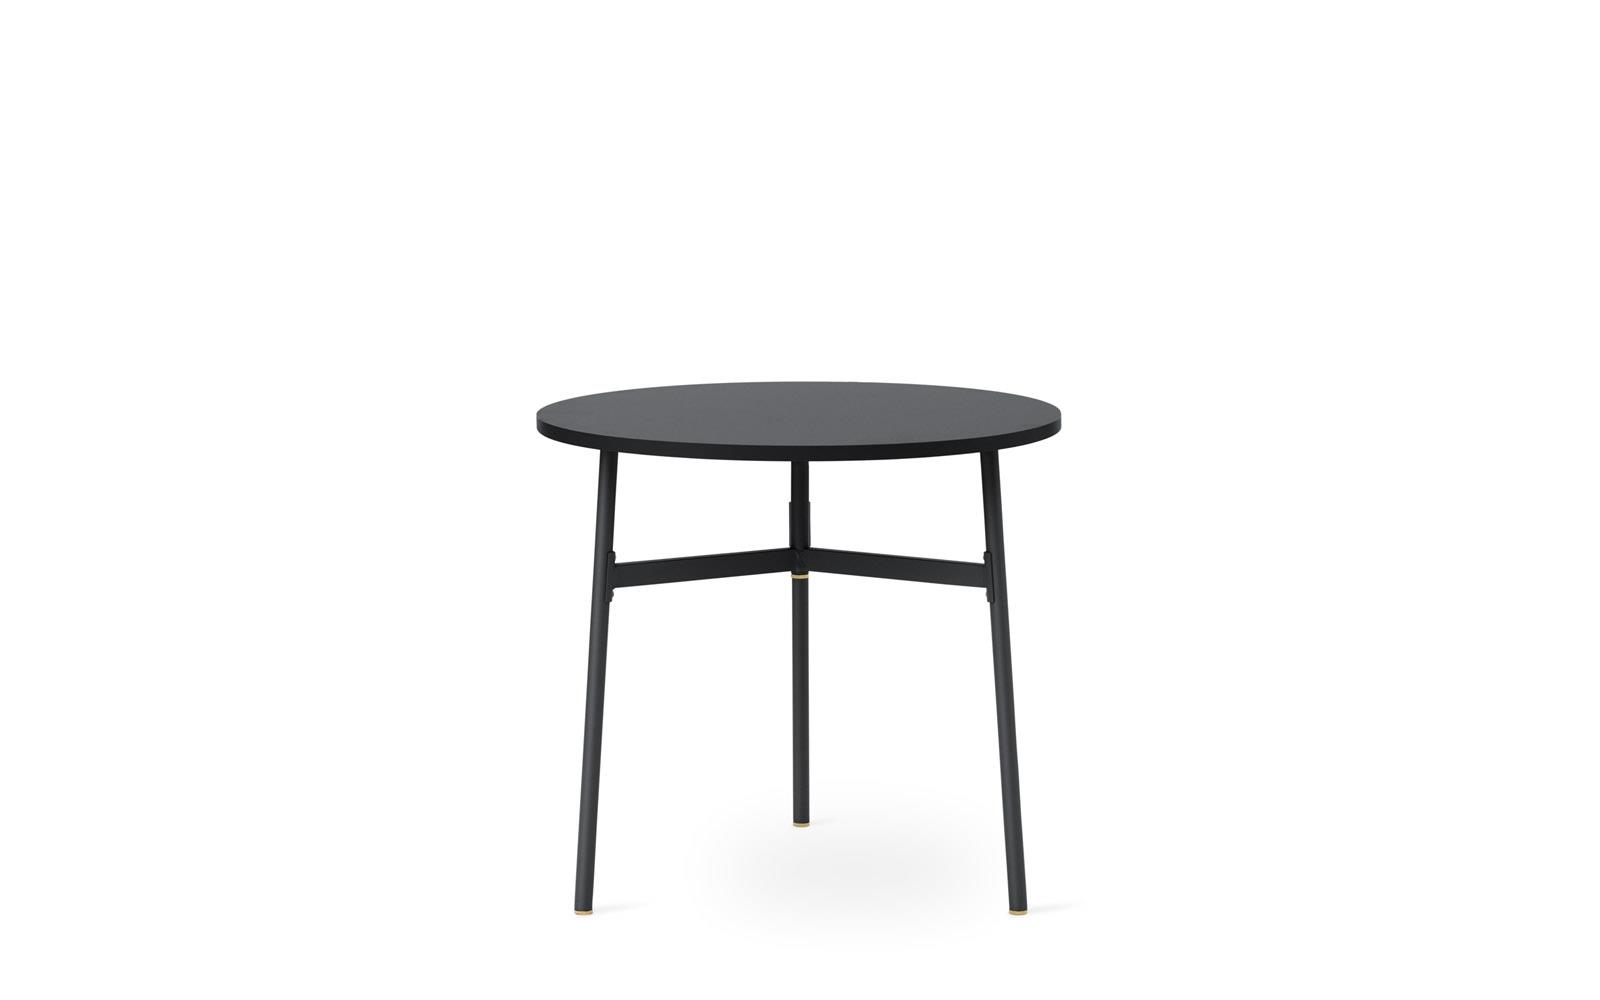 Union Table 80 x H745 cm2